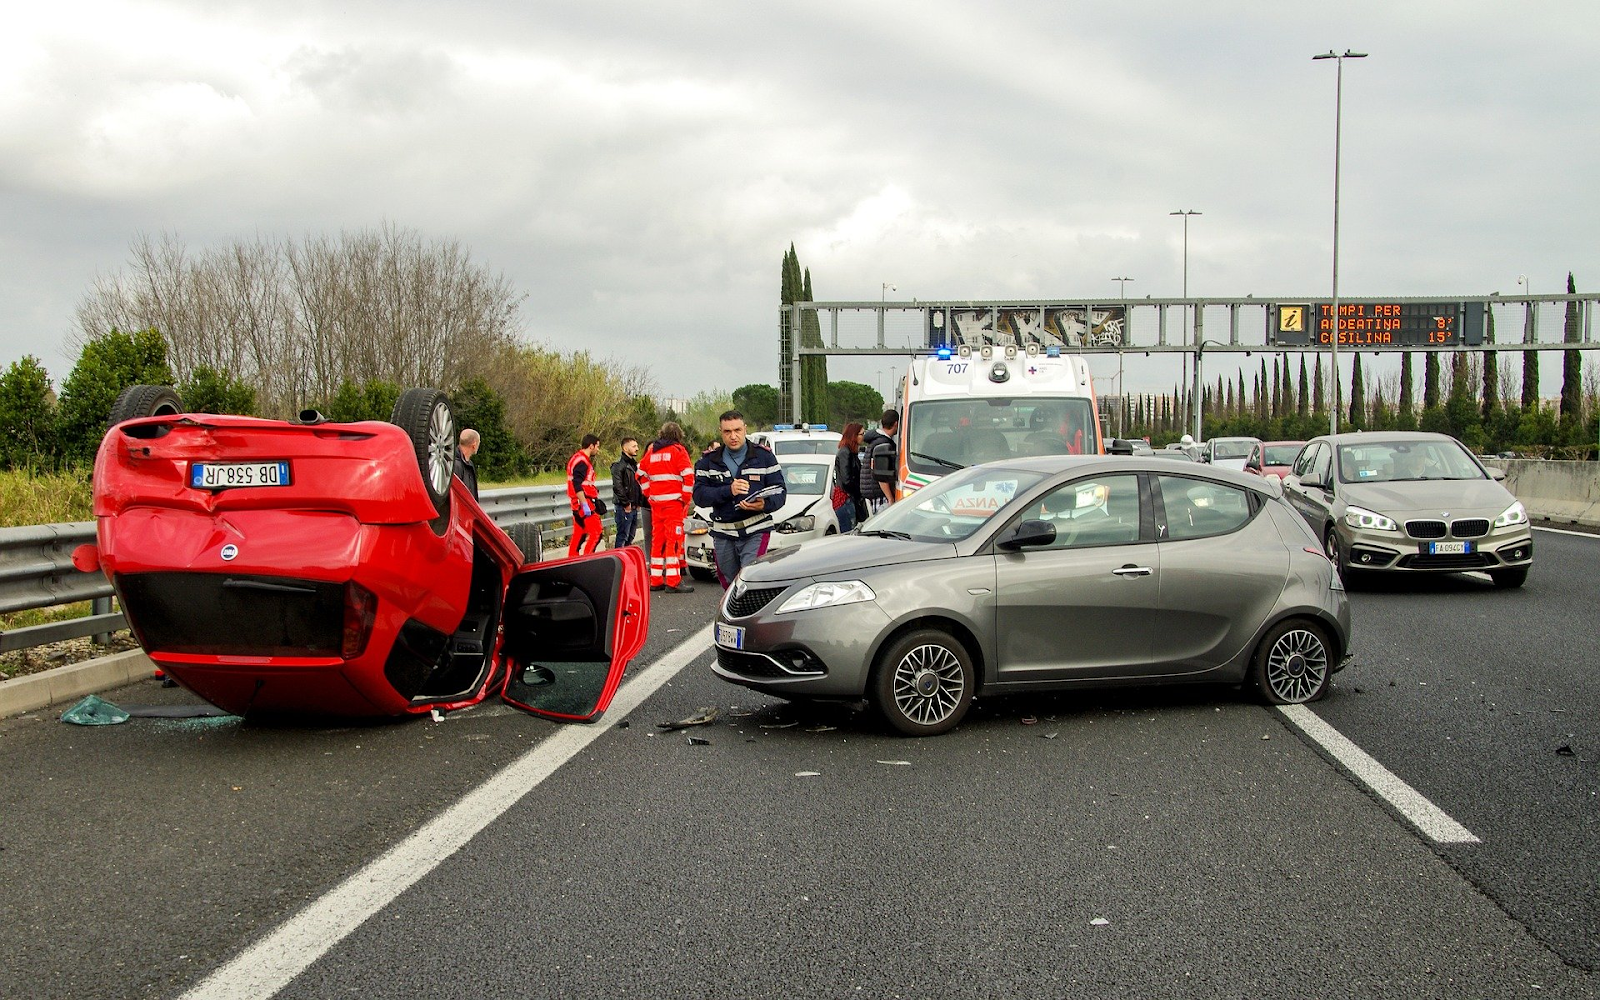 Things to do after getting involved in a car accident